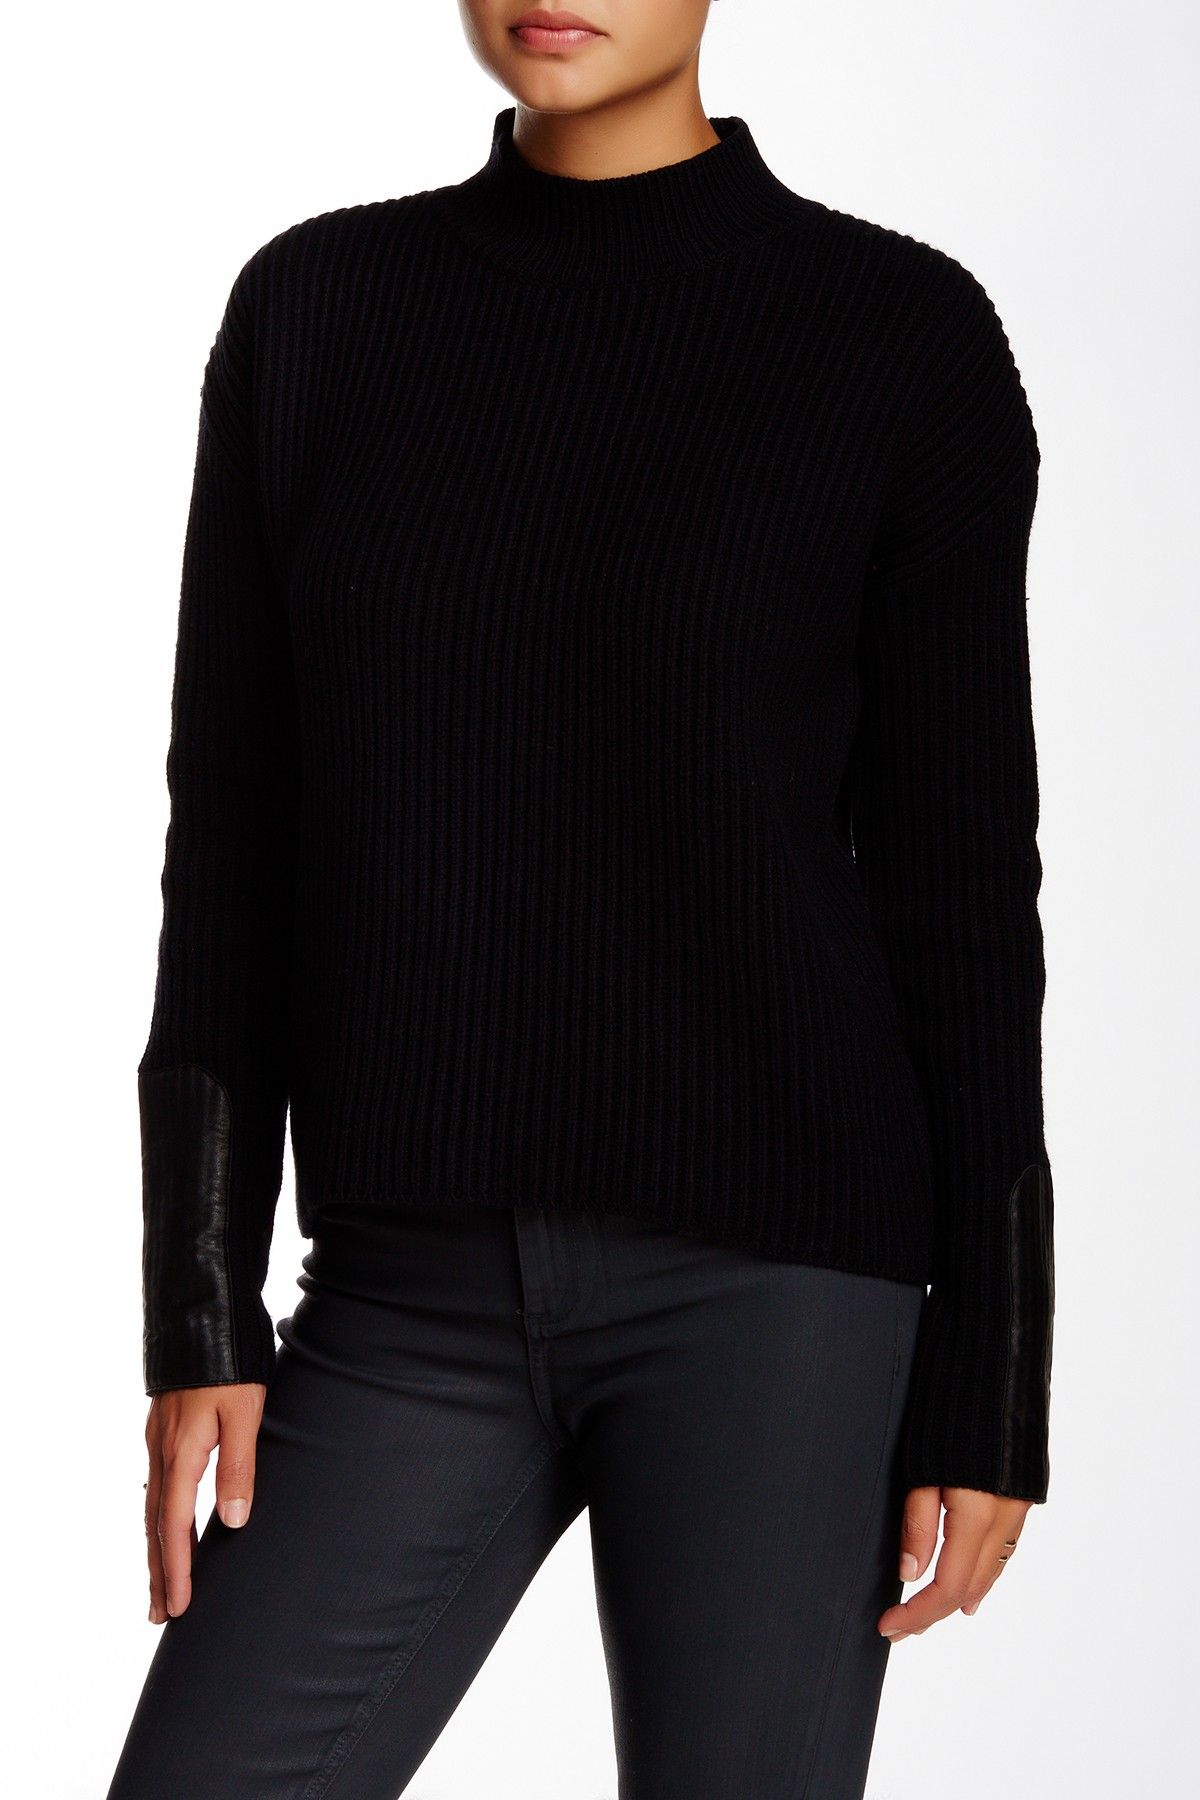 Leather Trim Mock Neck Sweater by Michael Stars on @nordstrom_rack